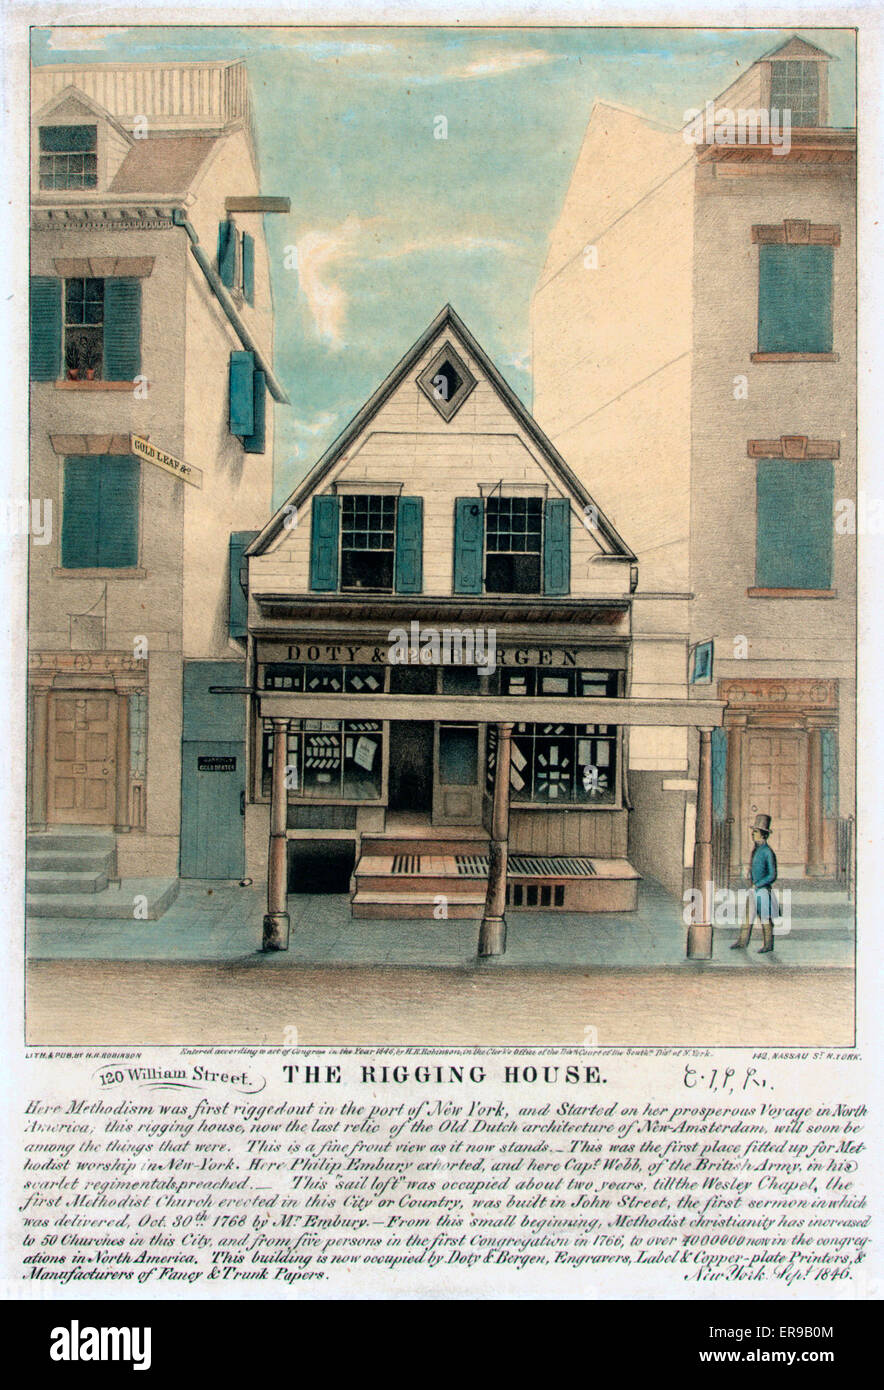 The rigging house. Exterior view of the Rigging House, 120 William Street, New York City, formerly a Methodist church - Stock Image